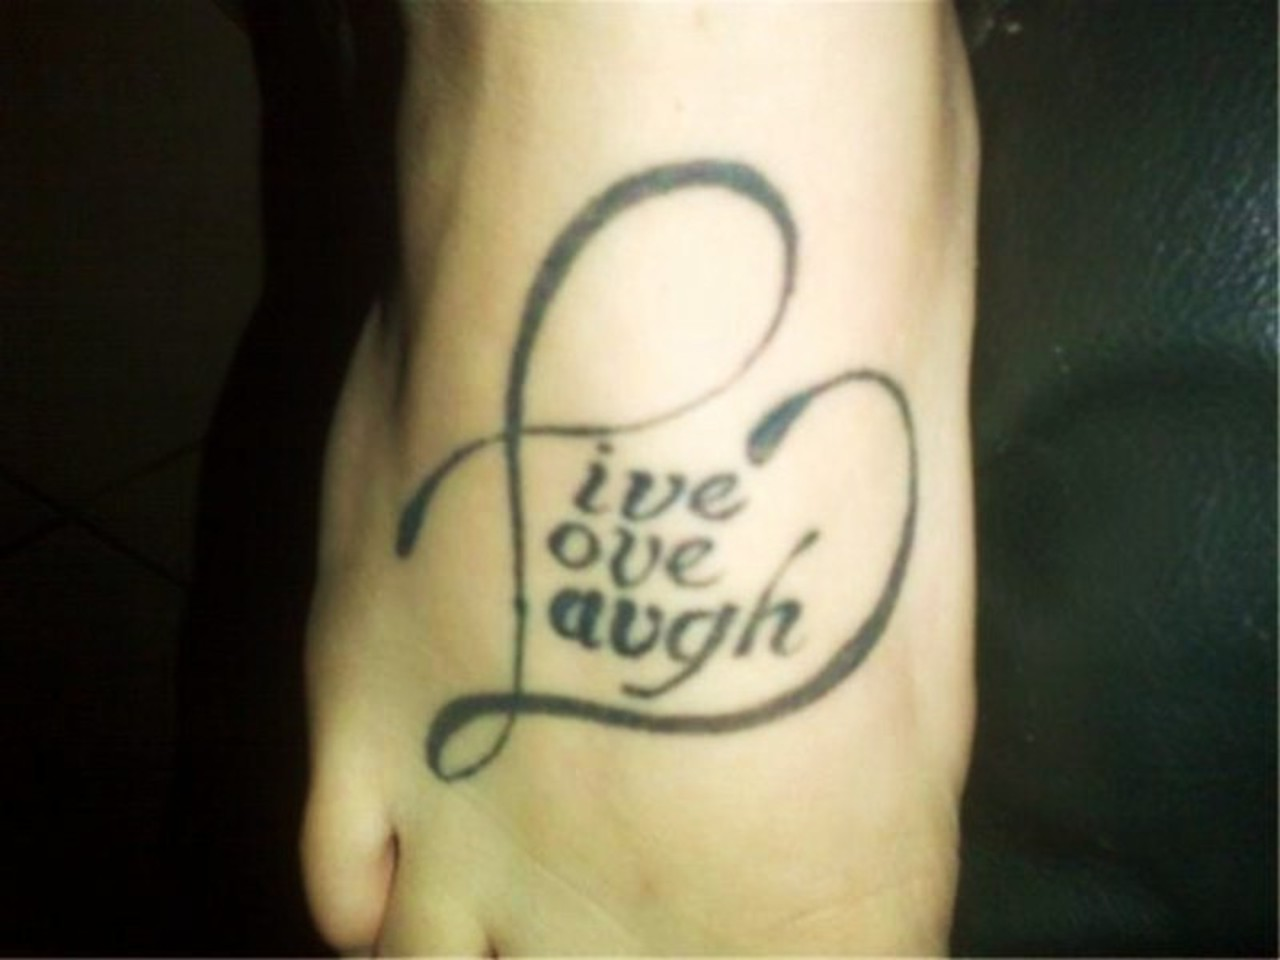 Live Laugh Love Tattoos Designs, Ideas and Meaning ...